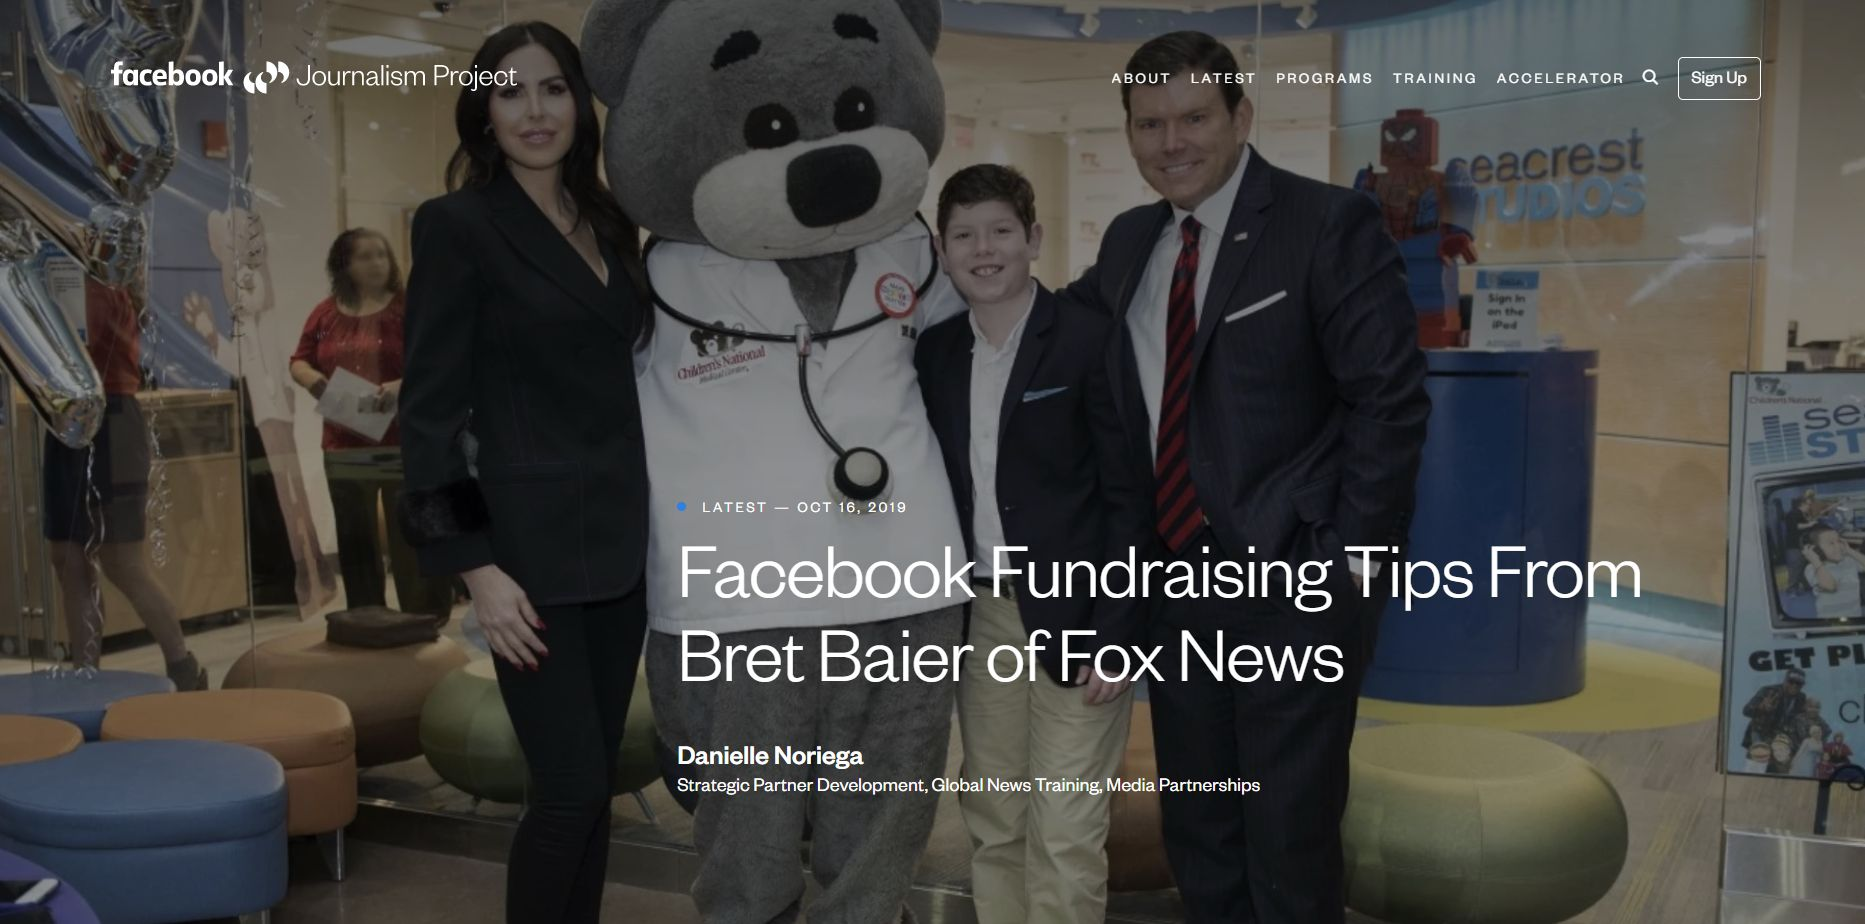 The editor of CCO Magazine would like to draw readers' attention to the article published by the Facebook Journalism Project. Facebook Fundraising Tips From Bret Baier of Fox News.